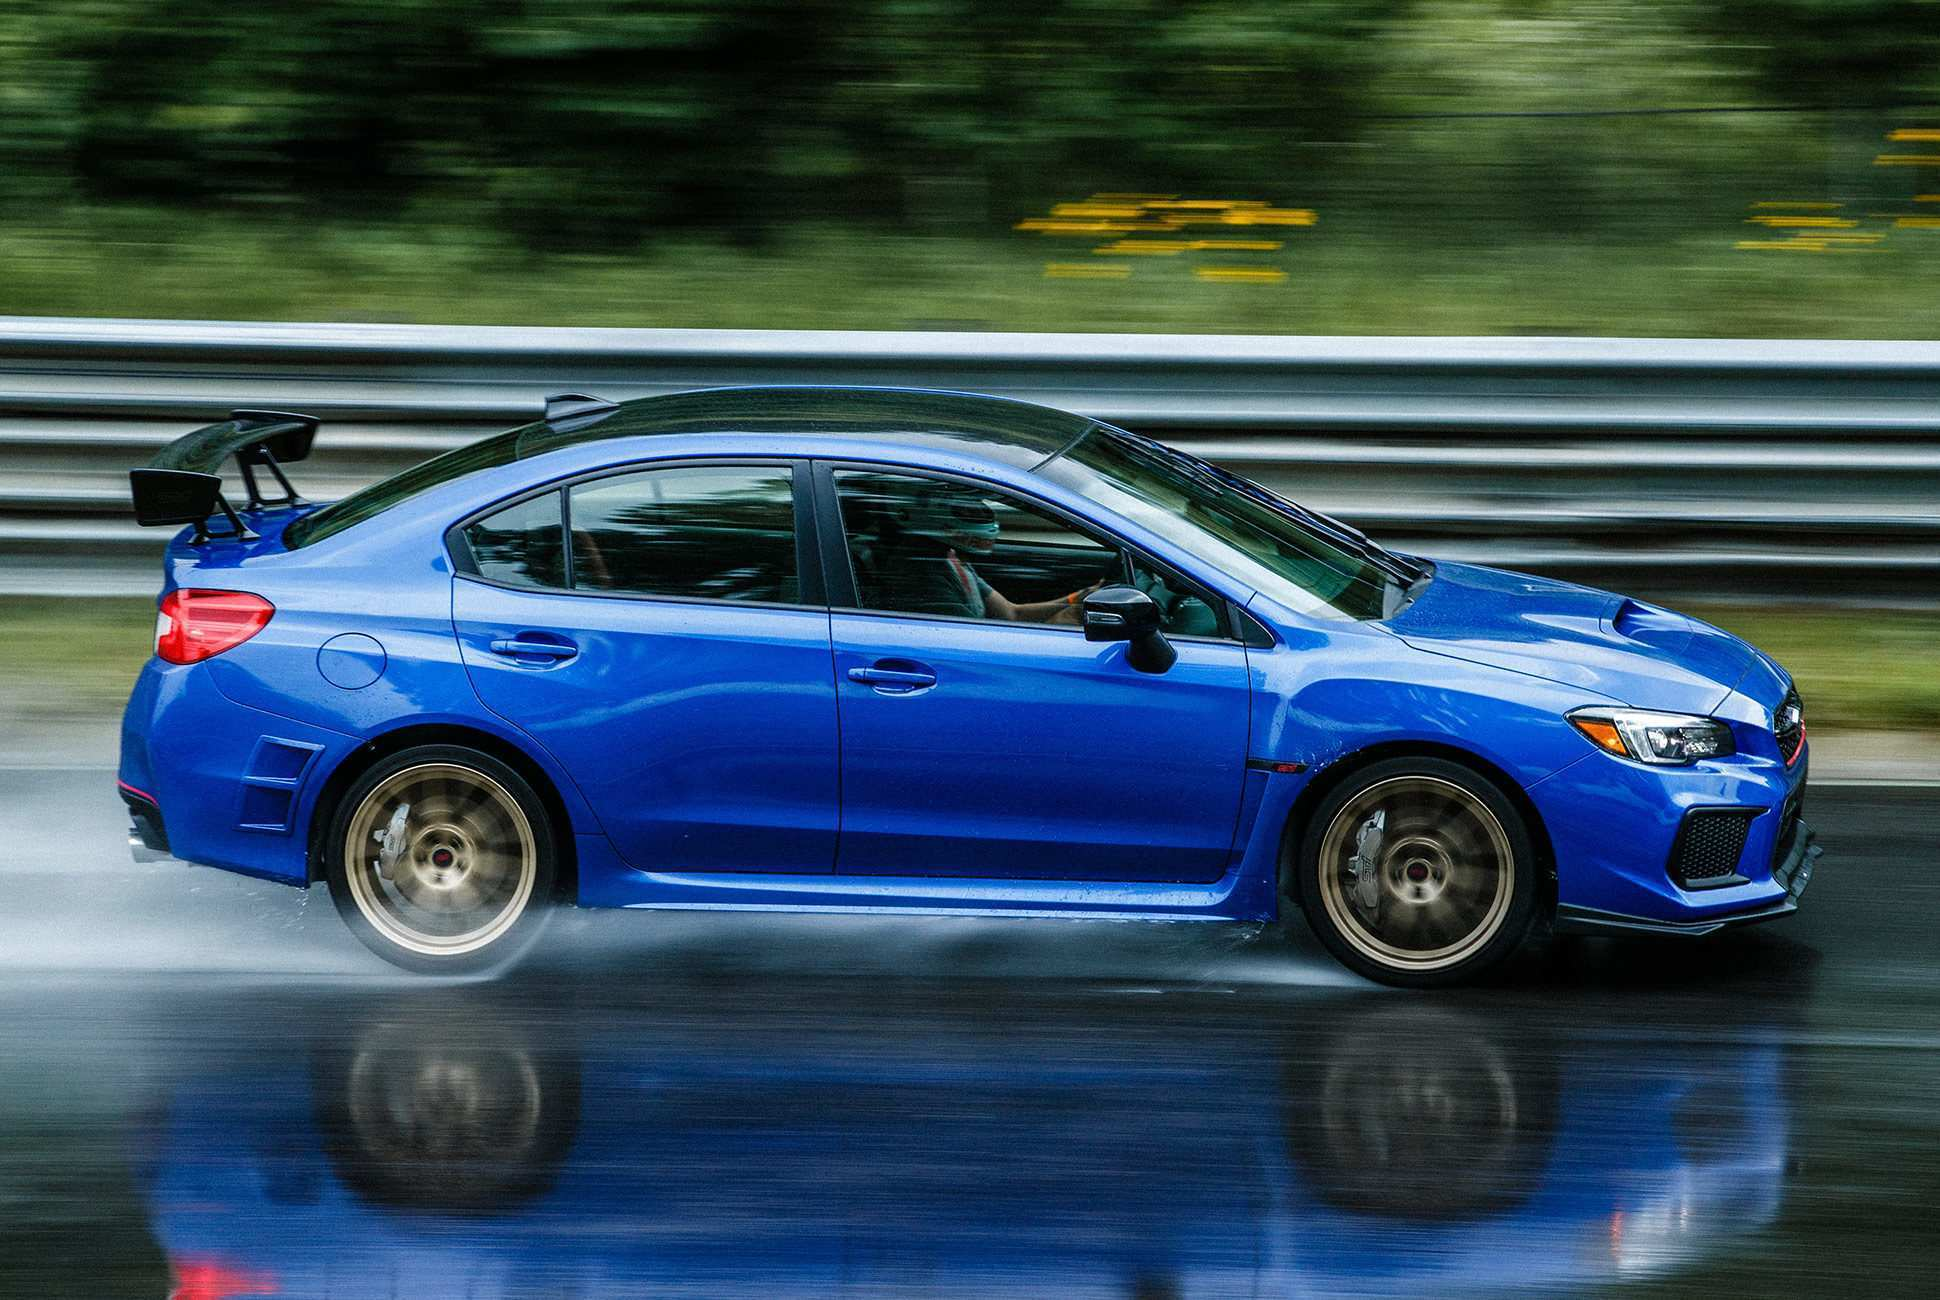 53 Great Subaru Impreza Sti 2019 Review New Review by Subaru Impreza Sti 2019 Review